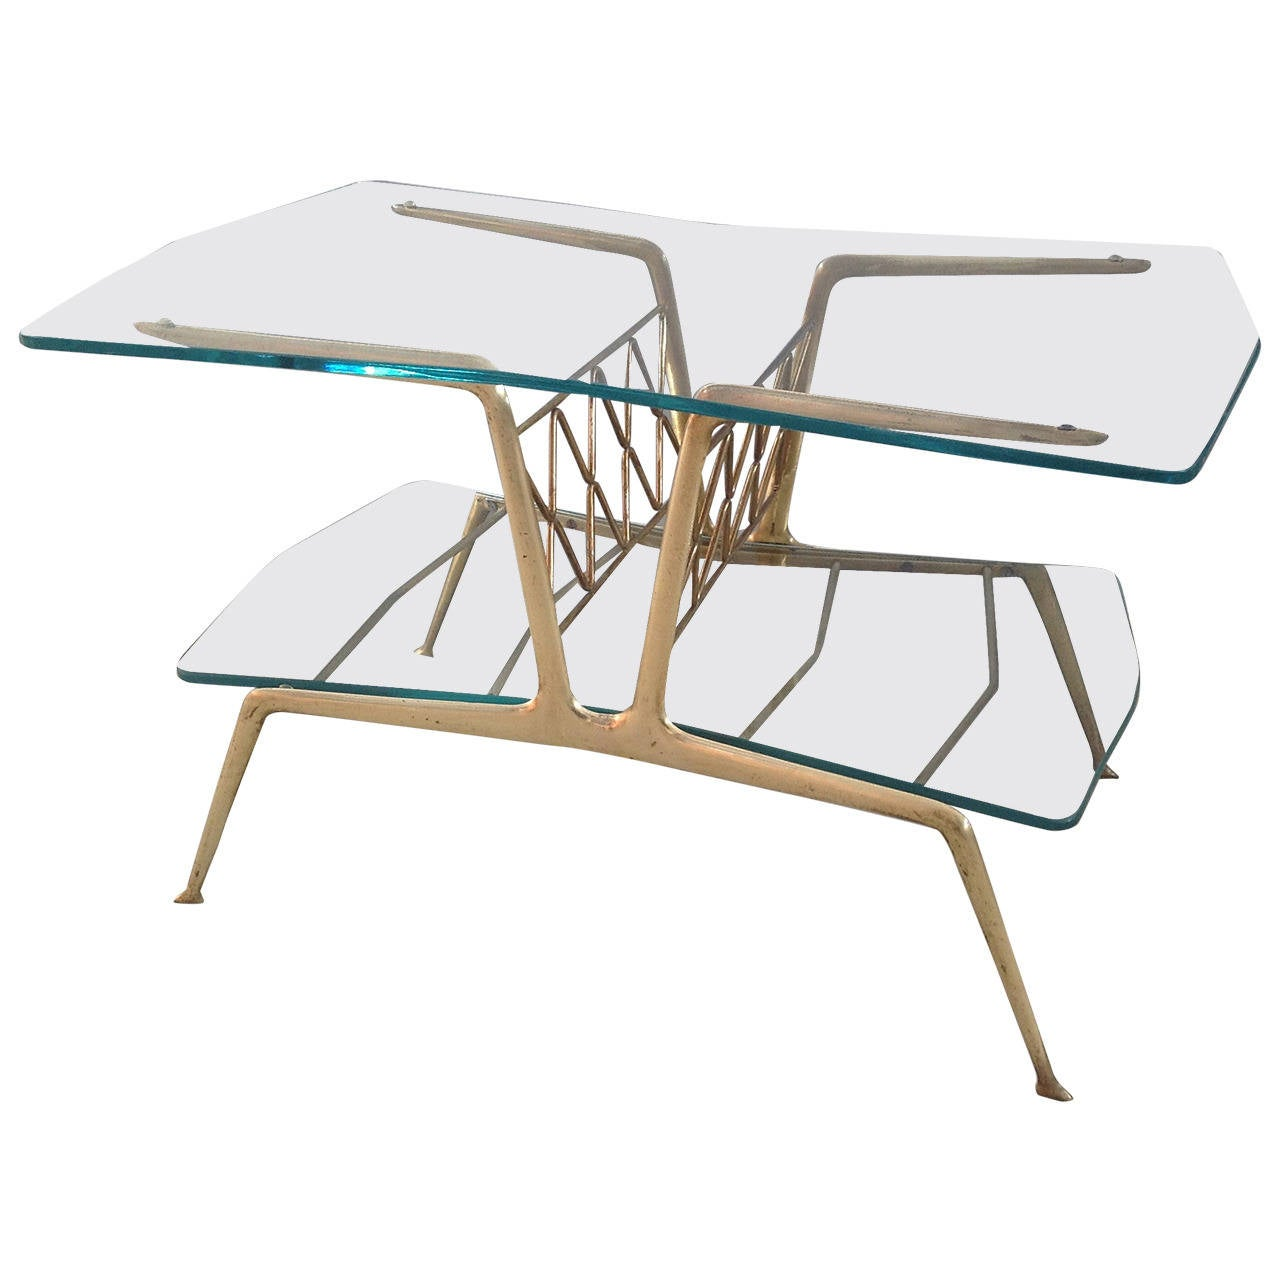 Gio ponti style magazine coffee table with magazine rack for Coffee tables 80cm wide